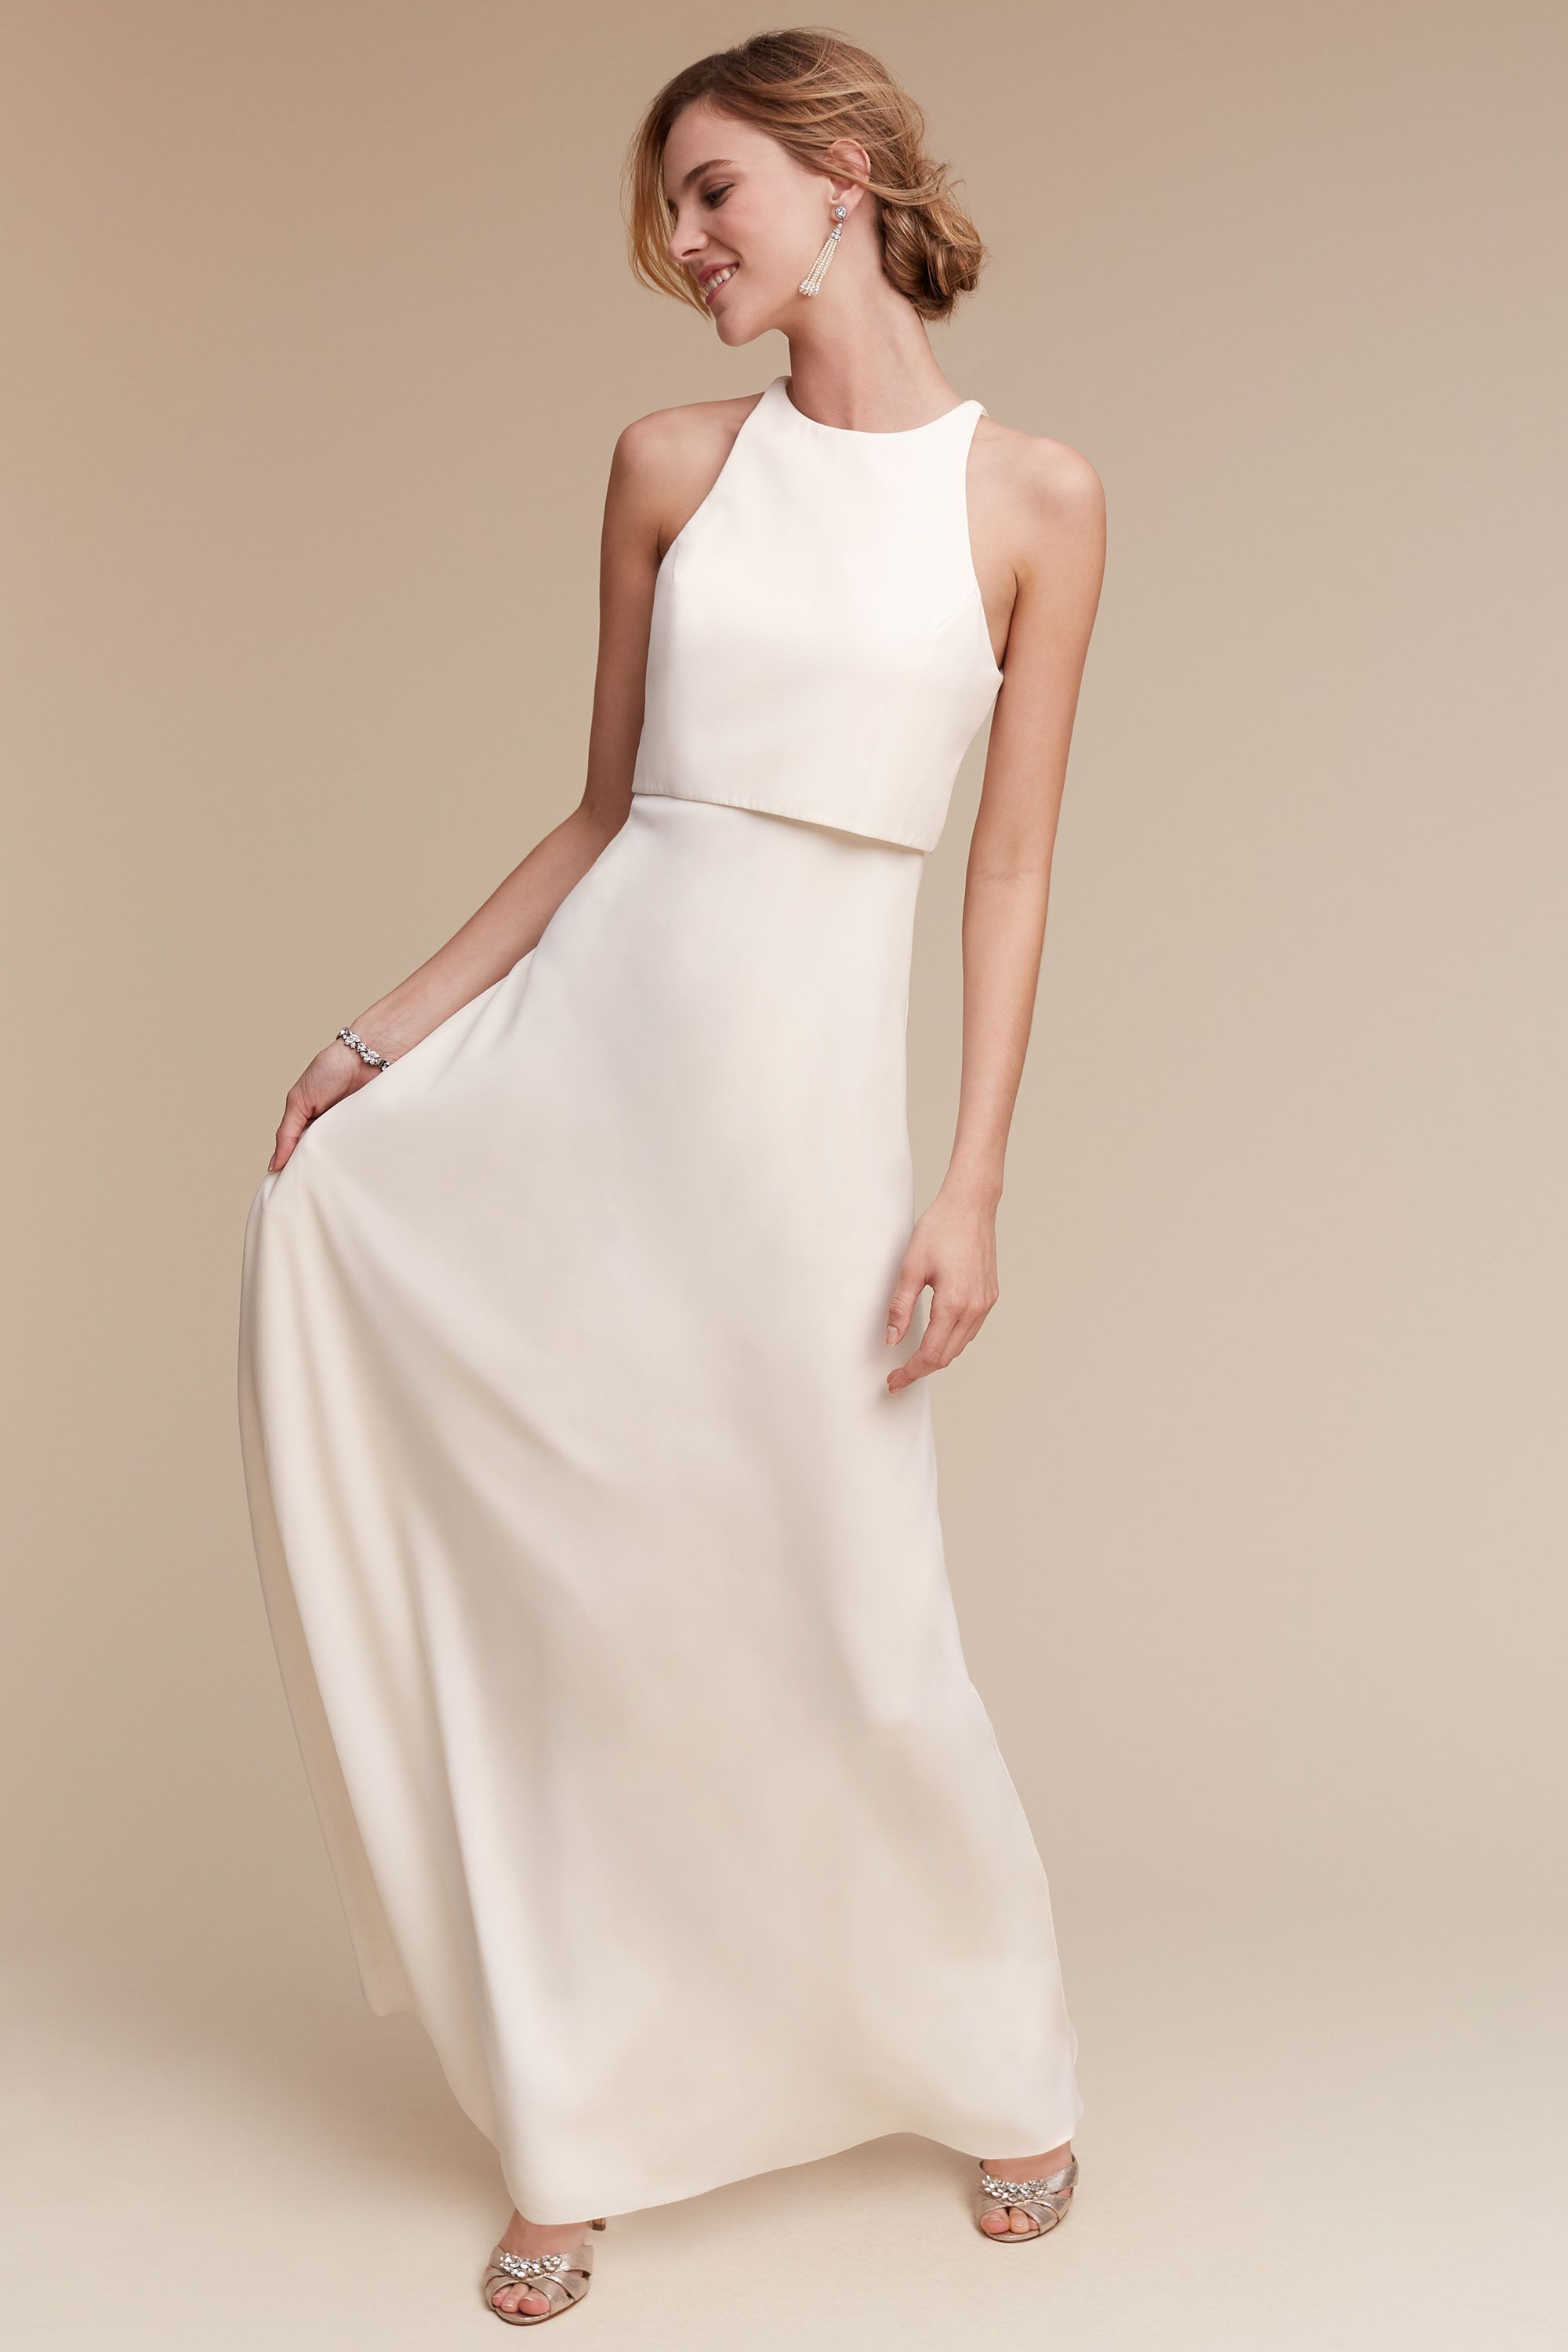 Silhouette wedding dresses simple bridal  Iva Crepe Maxi from BHLDN for rehearsalshower partydresses